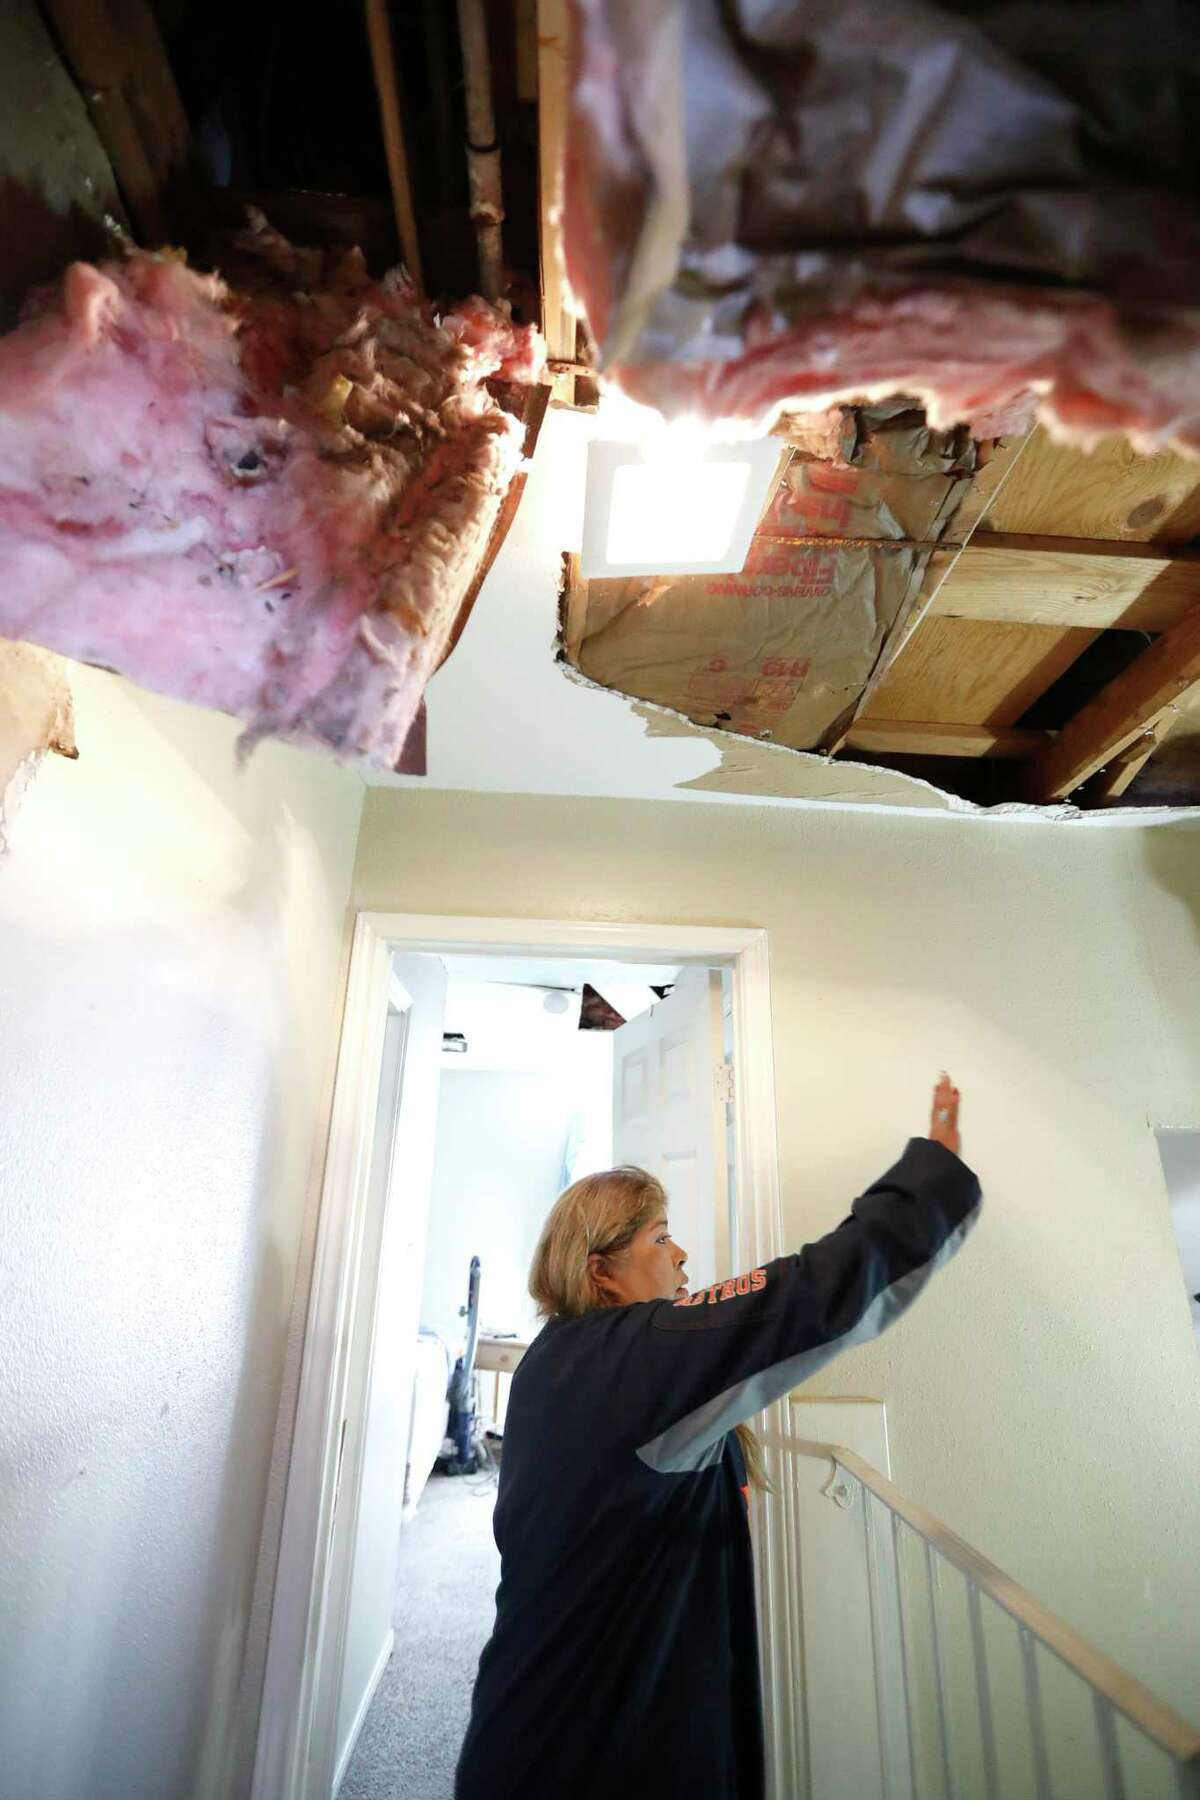 Maria Hernandez point to damage from her roof and ceiling as she and her family worked to move their belongings out as they sifted through their damaged home in the Bridgeland Lane area of Houston, Sunday, Jan. 26, 2020, after the Watson Grinding Manufacturing explosion early Friday morning.